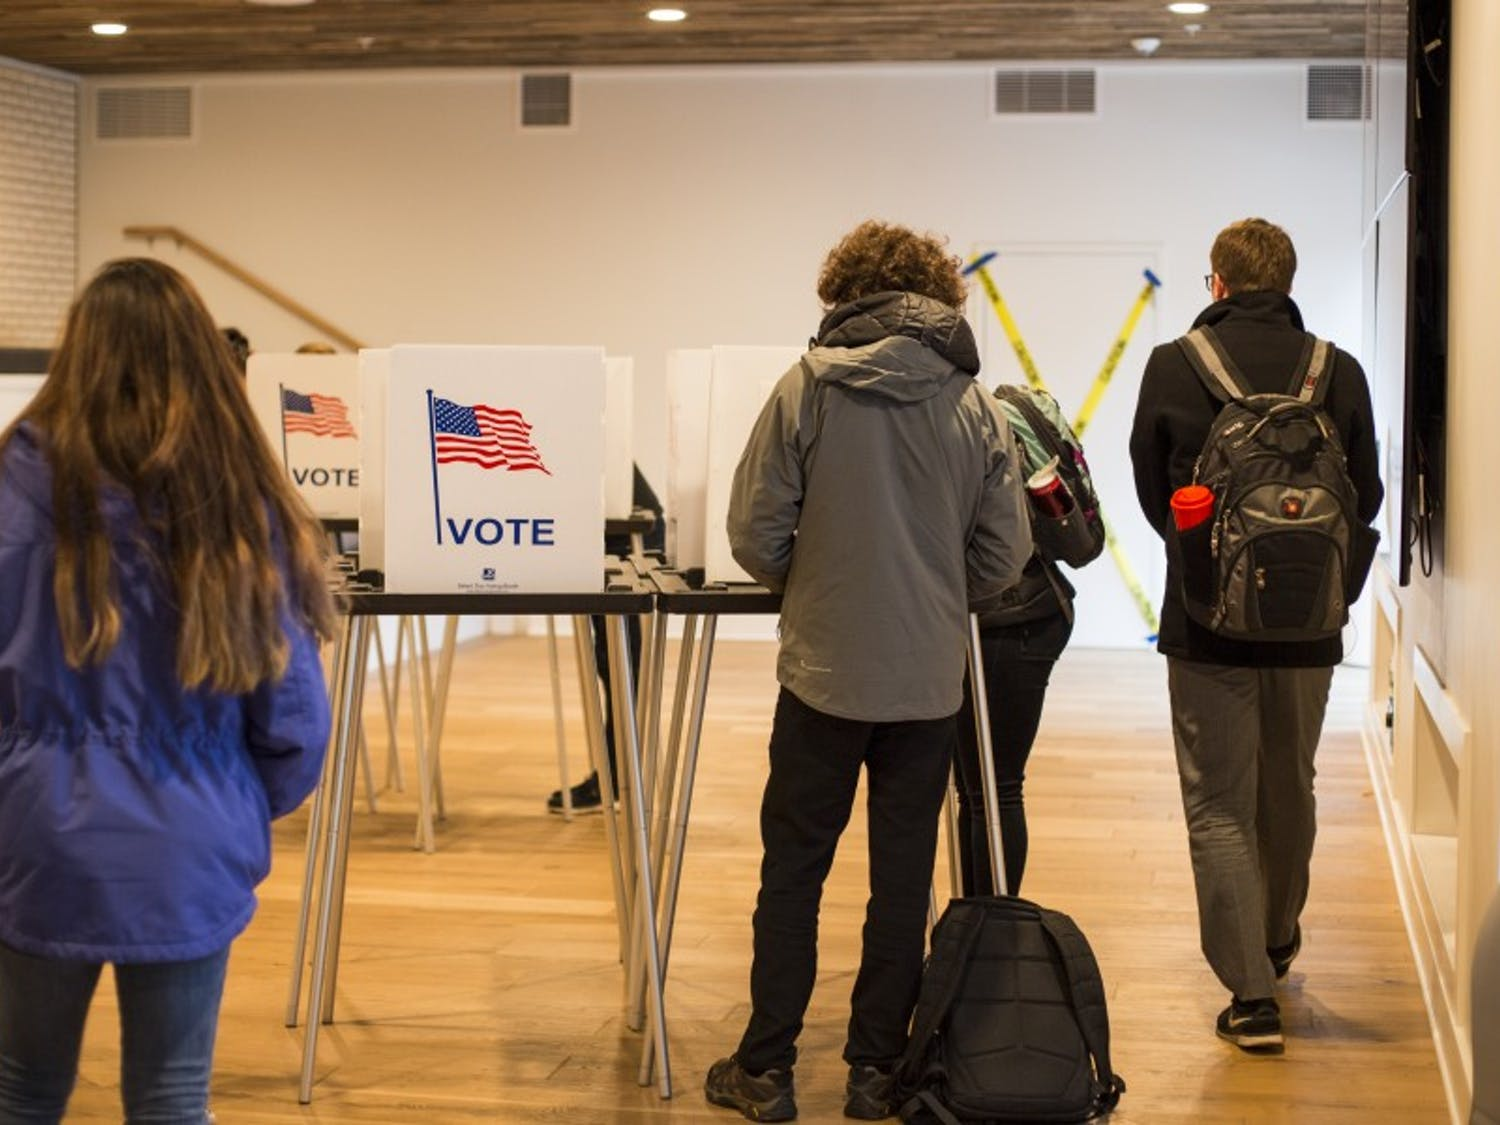 State elections will now be managed by two new commissions comprised of bipartisan members.